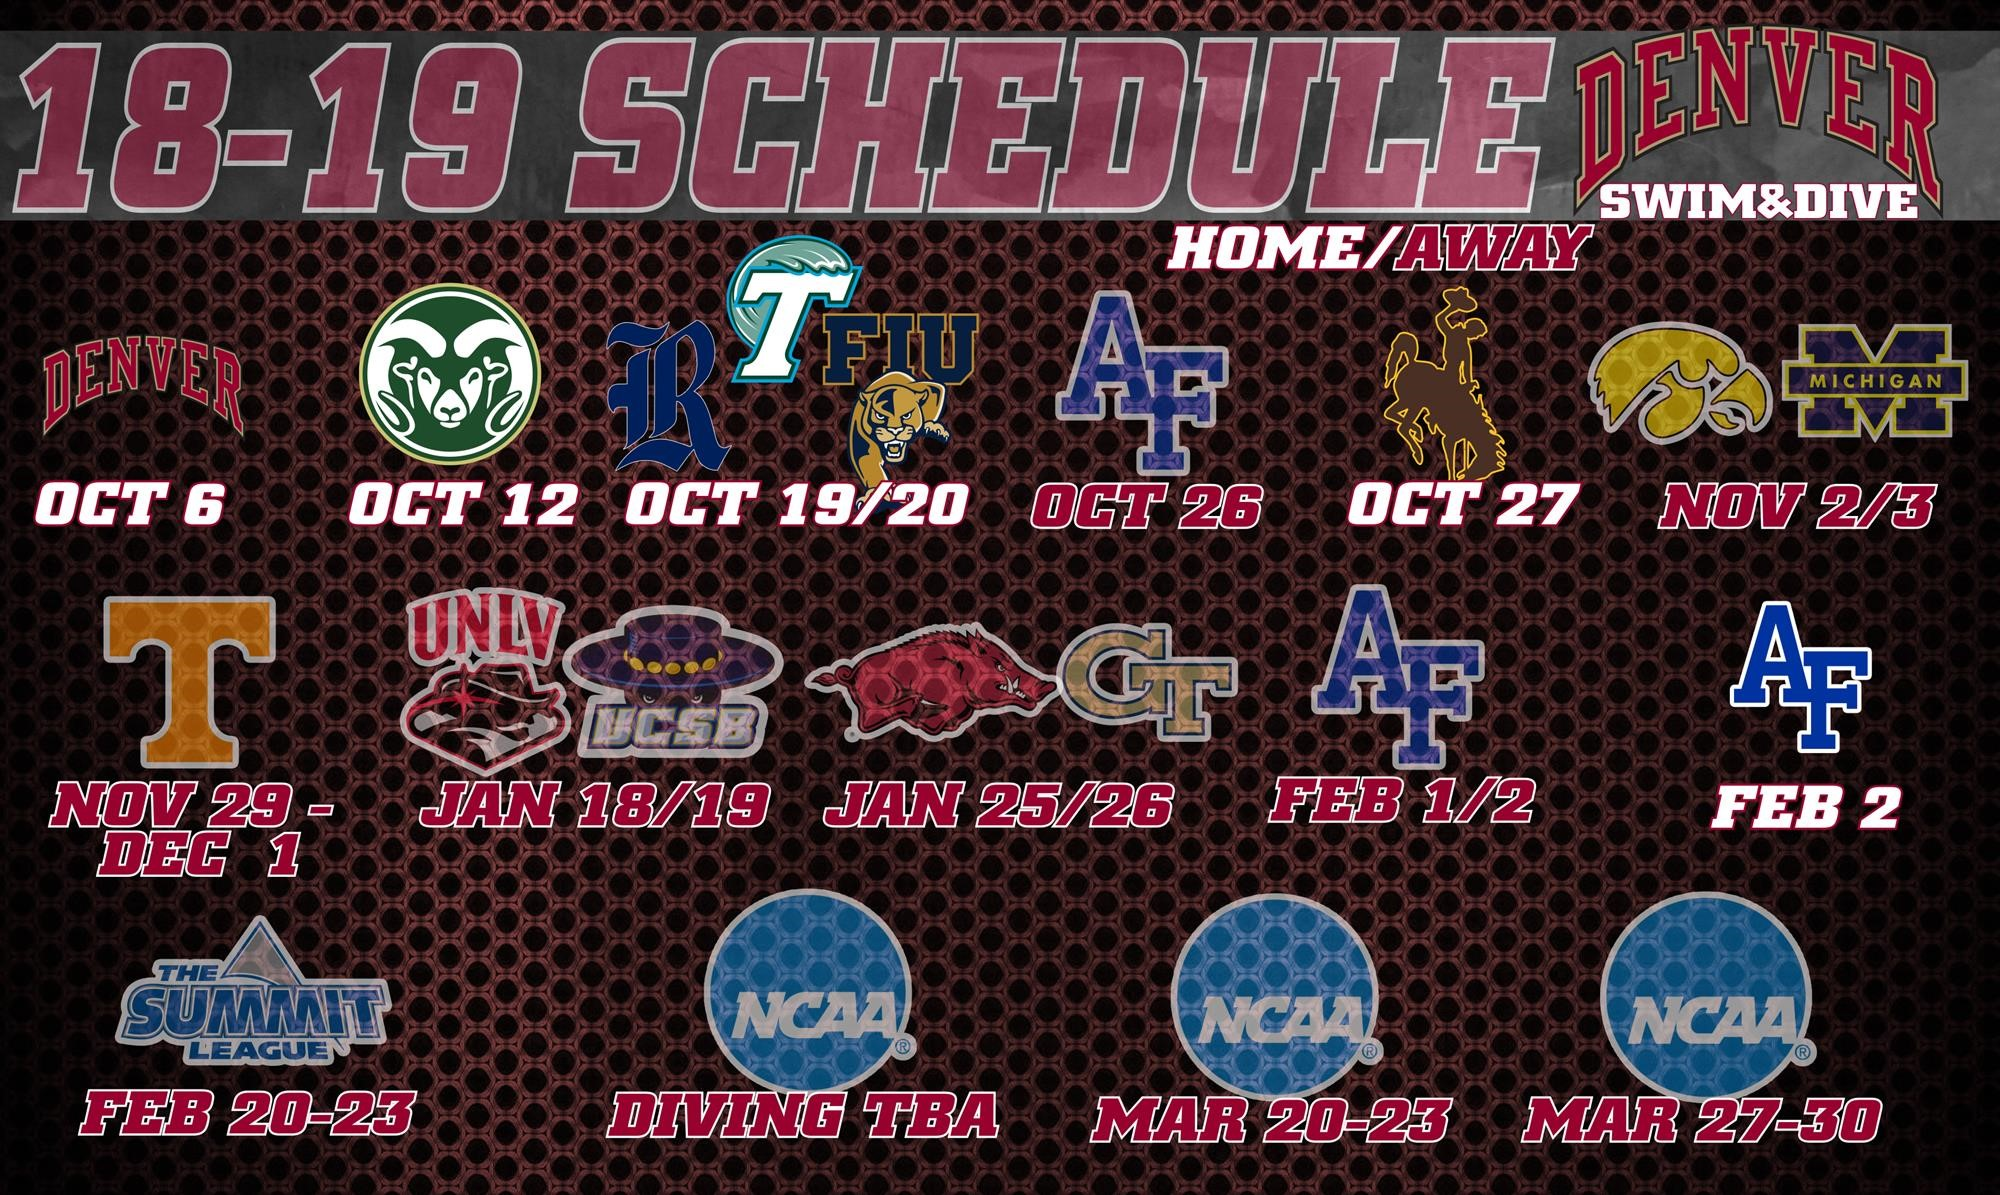 2018-19 Men's and Women's Swimming and Diving Schedules